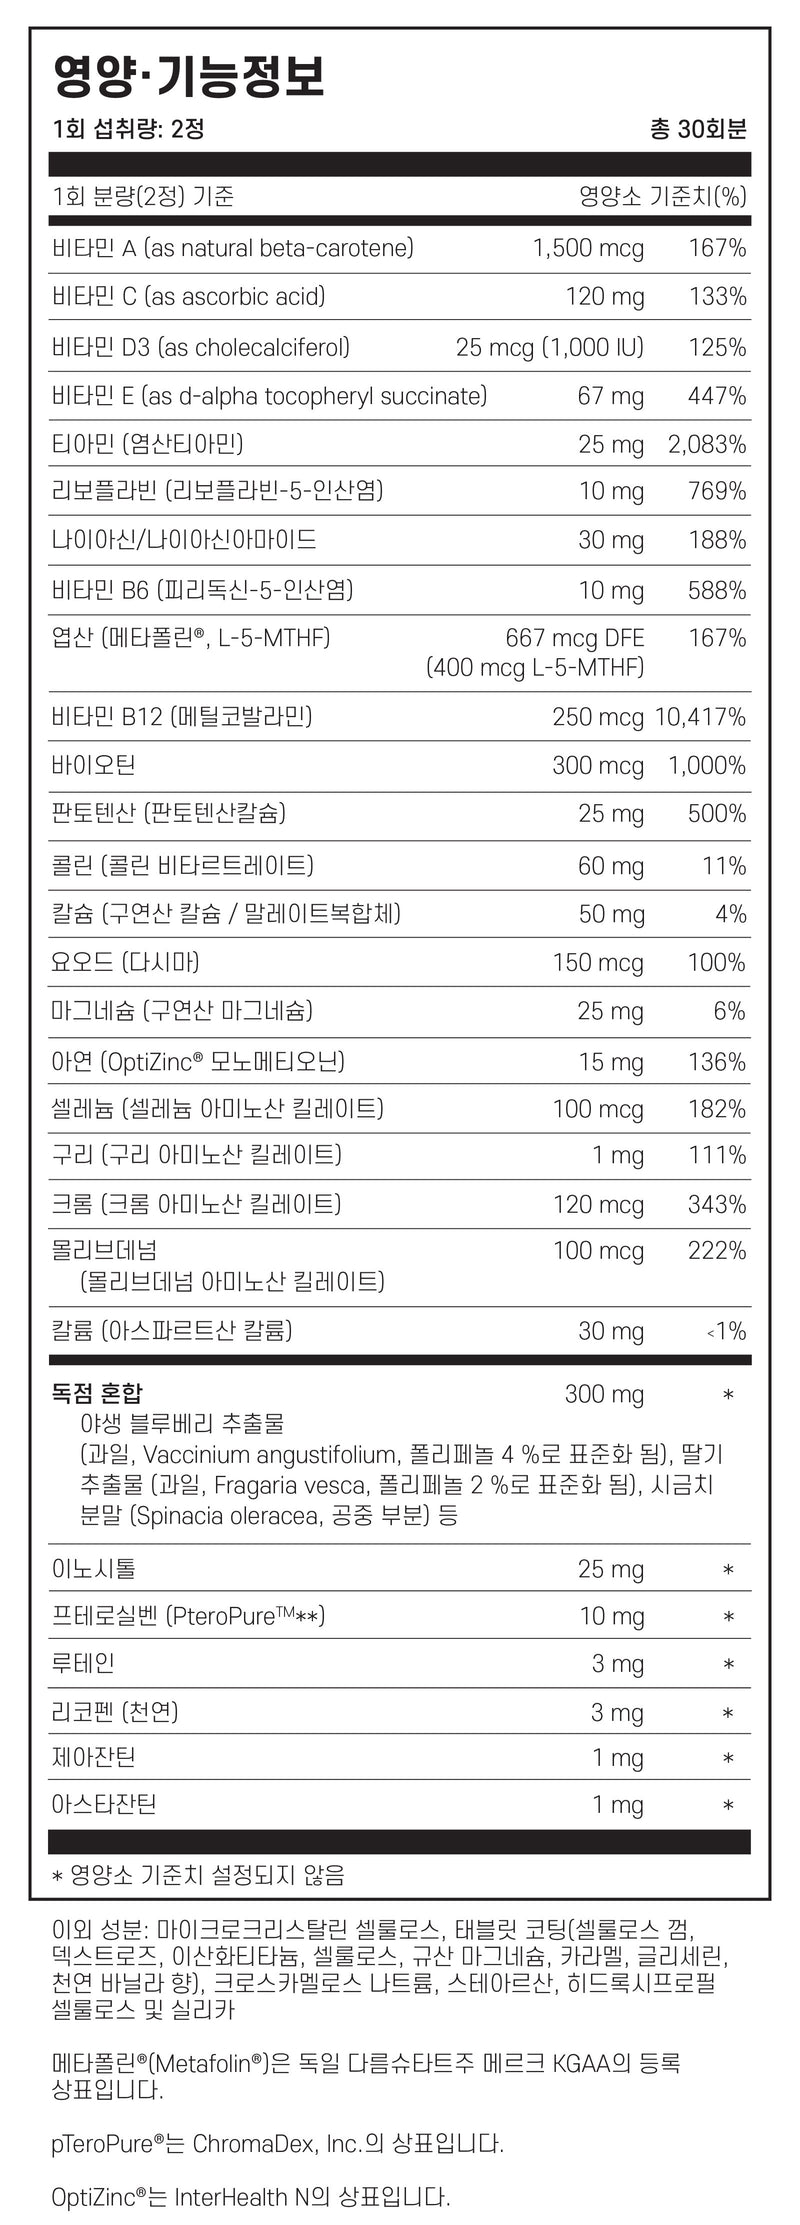 필로소피 액티브 멀티 비타민 60정 - Philosophy Nutrition Active Multi Vitamin 60 tab